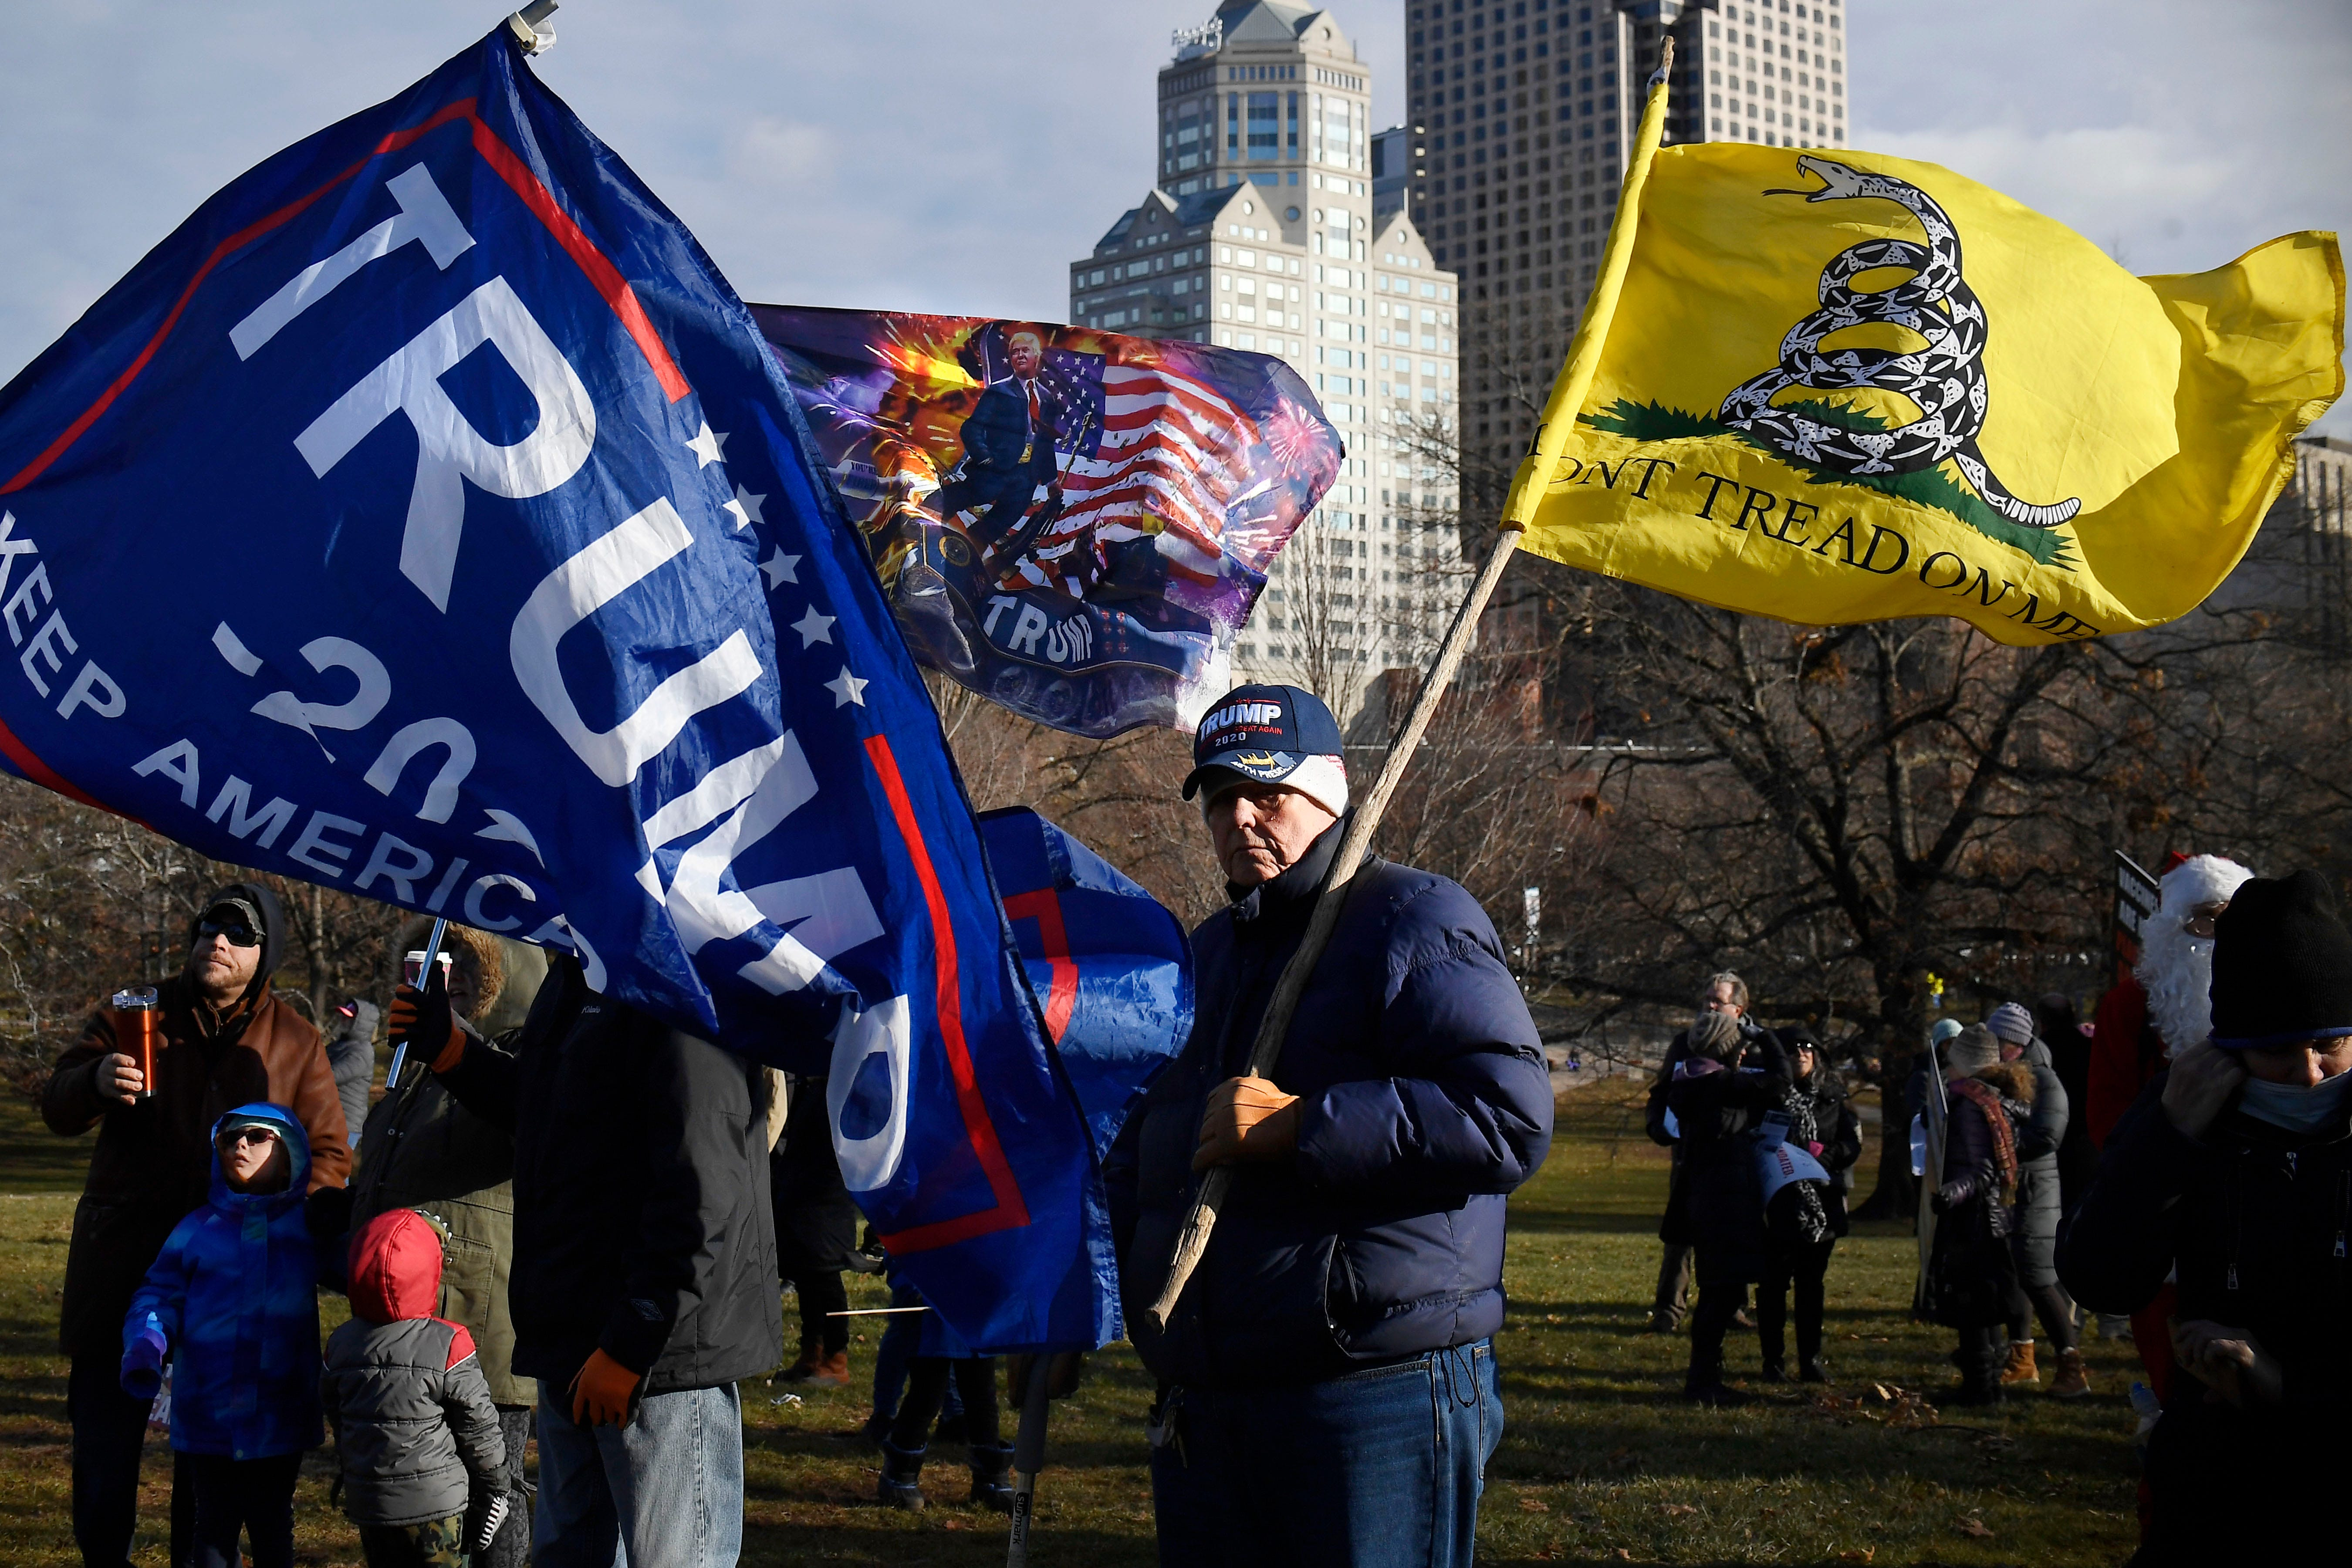 A Trump supporter protests outside on the State Capitol grounds, Wednesday, Jan. 6, 2021, in Hartford, Conn. Hundreds of protesters turned out for the swearing-in ceremonies.